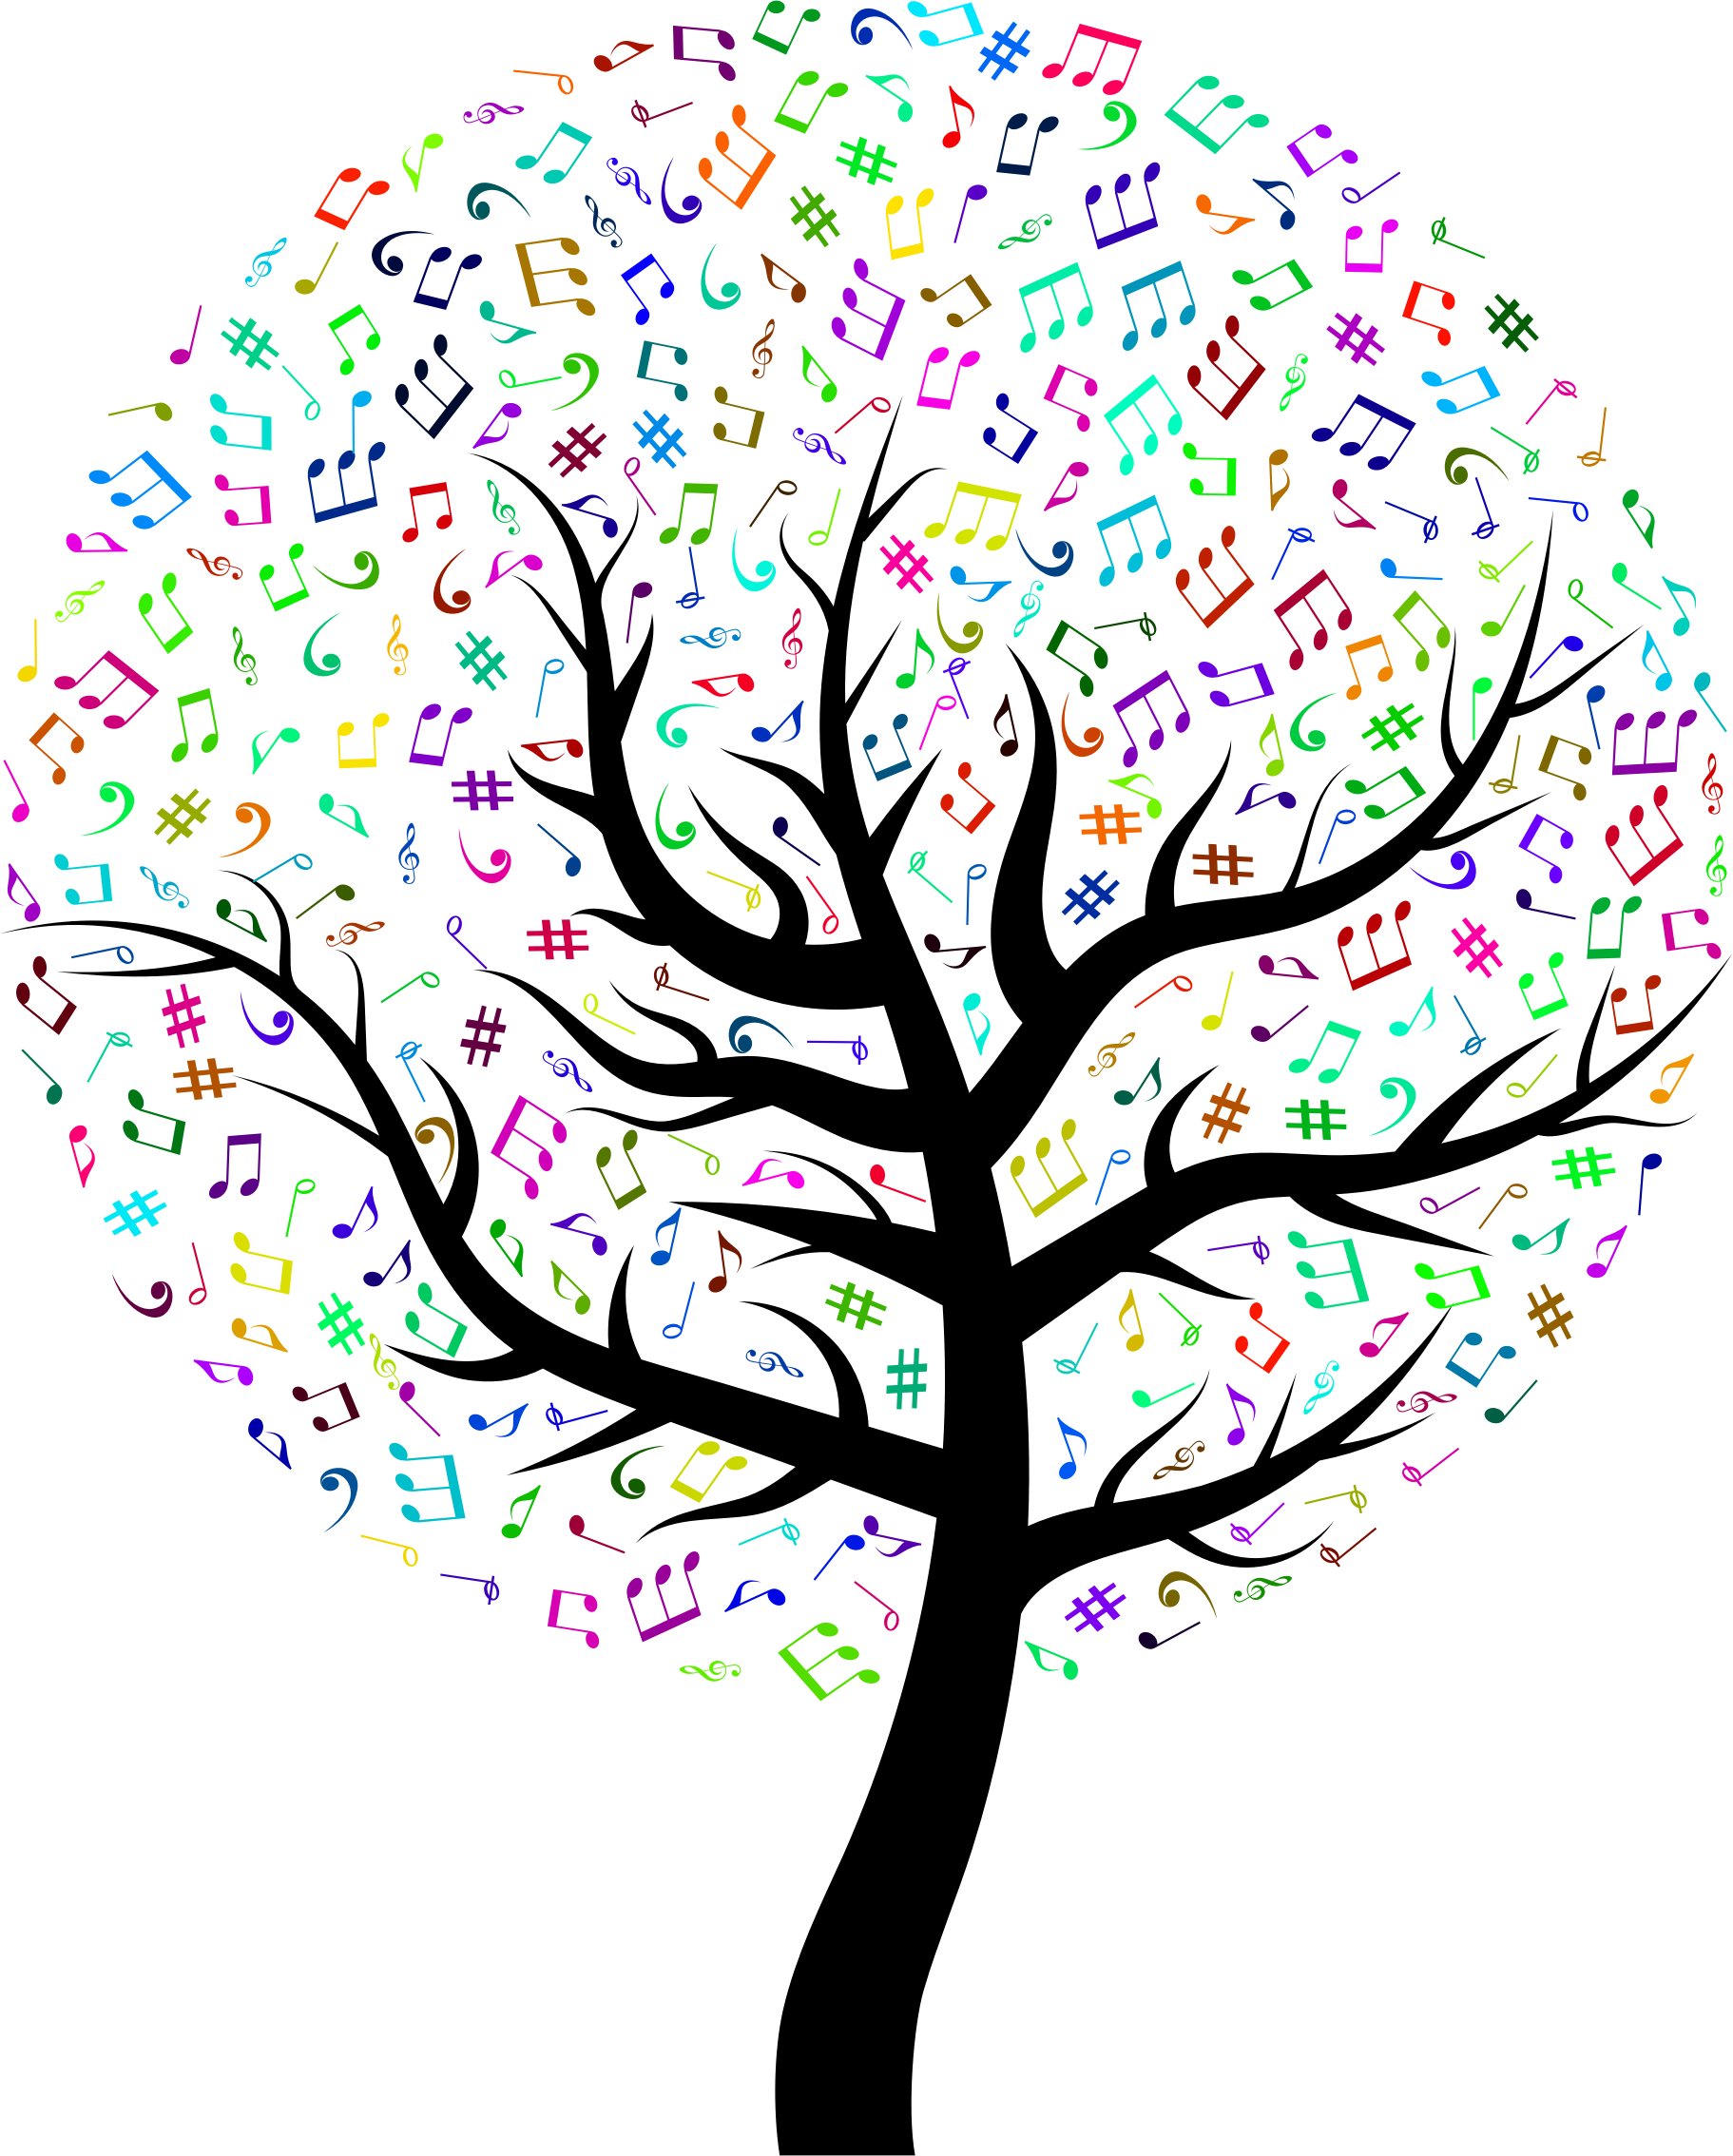 Prismatic Music Tree by GDJ